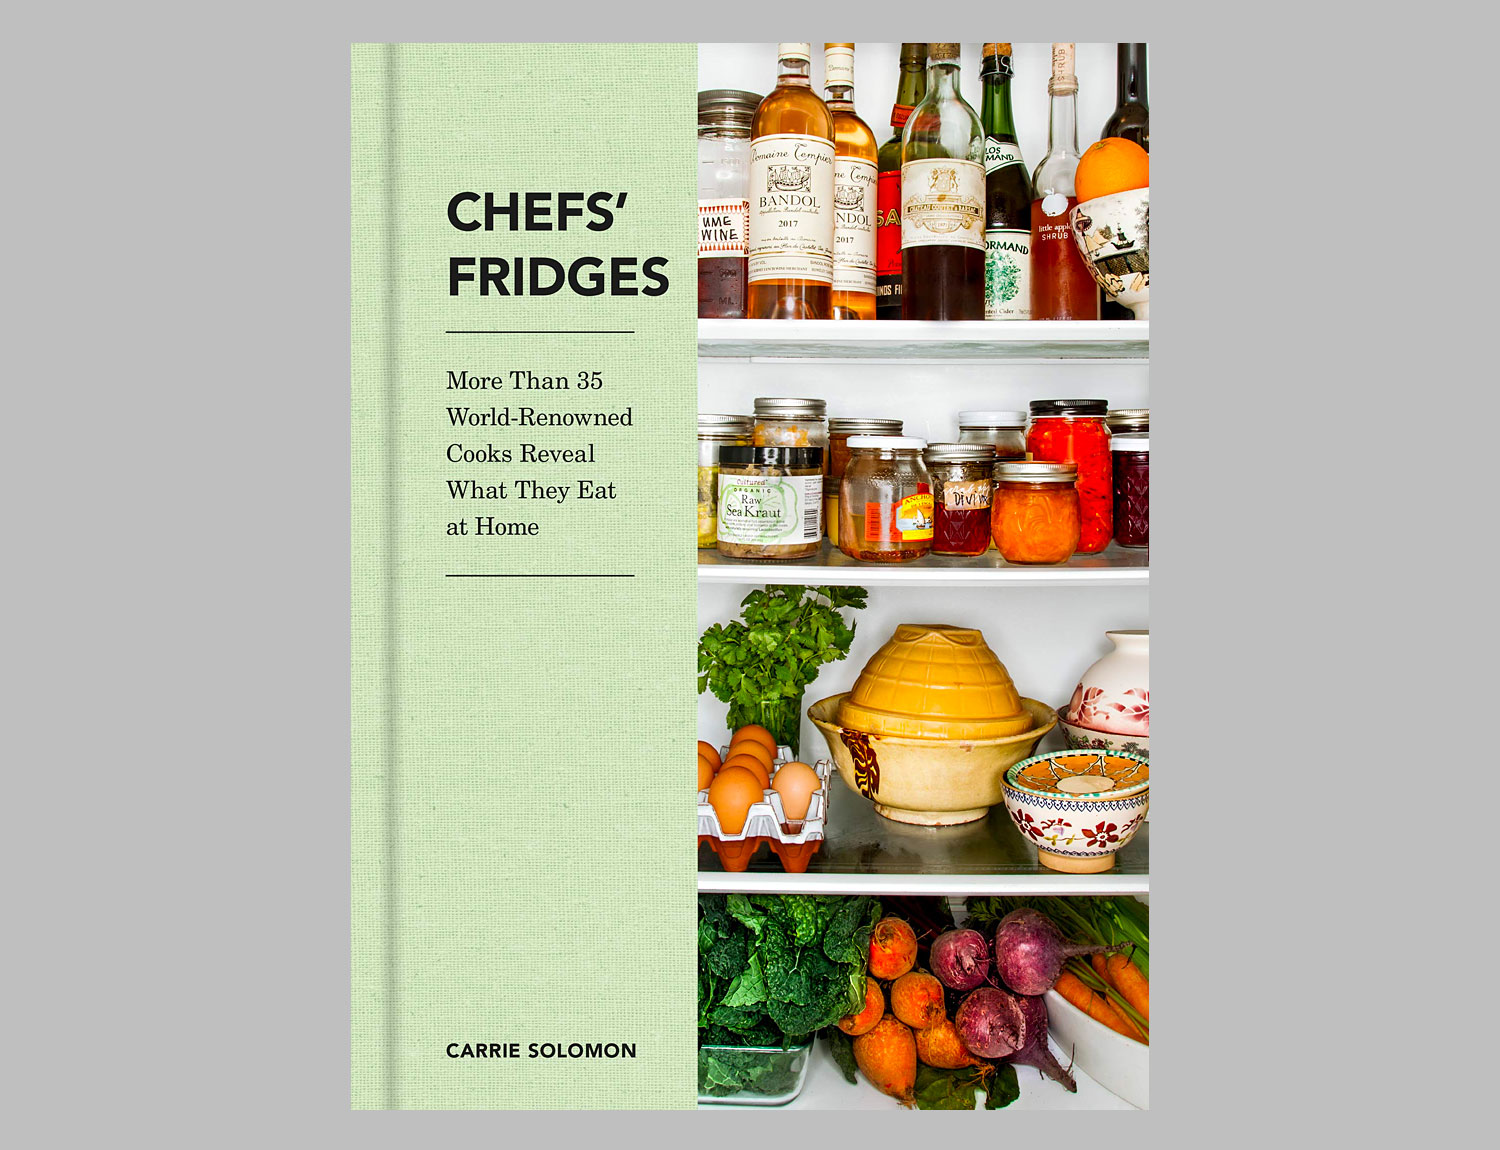 Chefs' Fridges: More Than 35 World-Renowned Cooks Reveal What They Eat at Home at werd.com